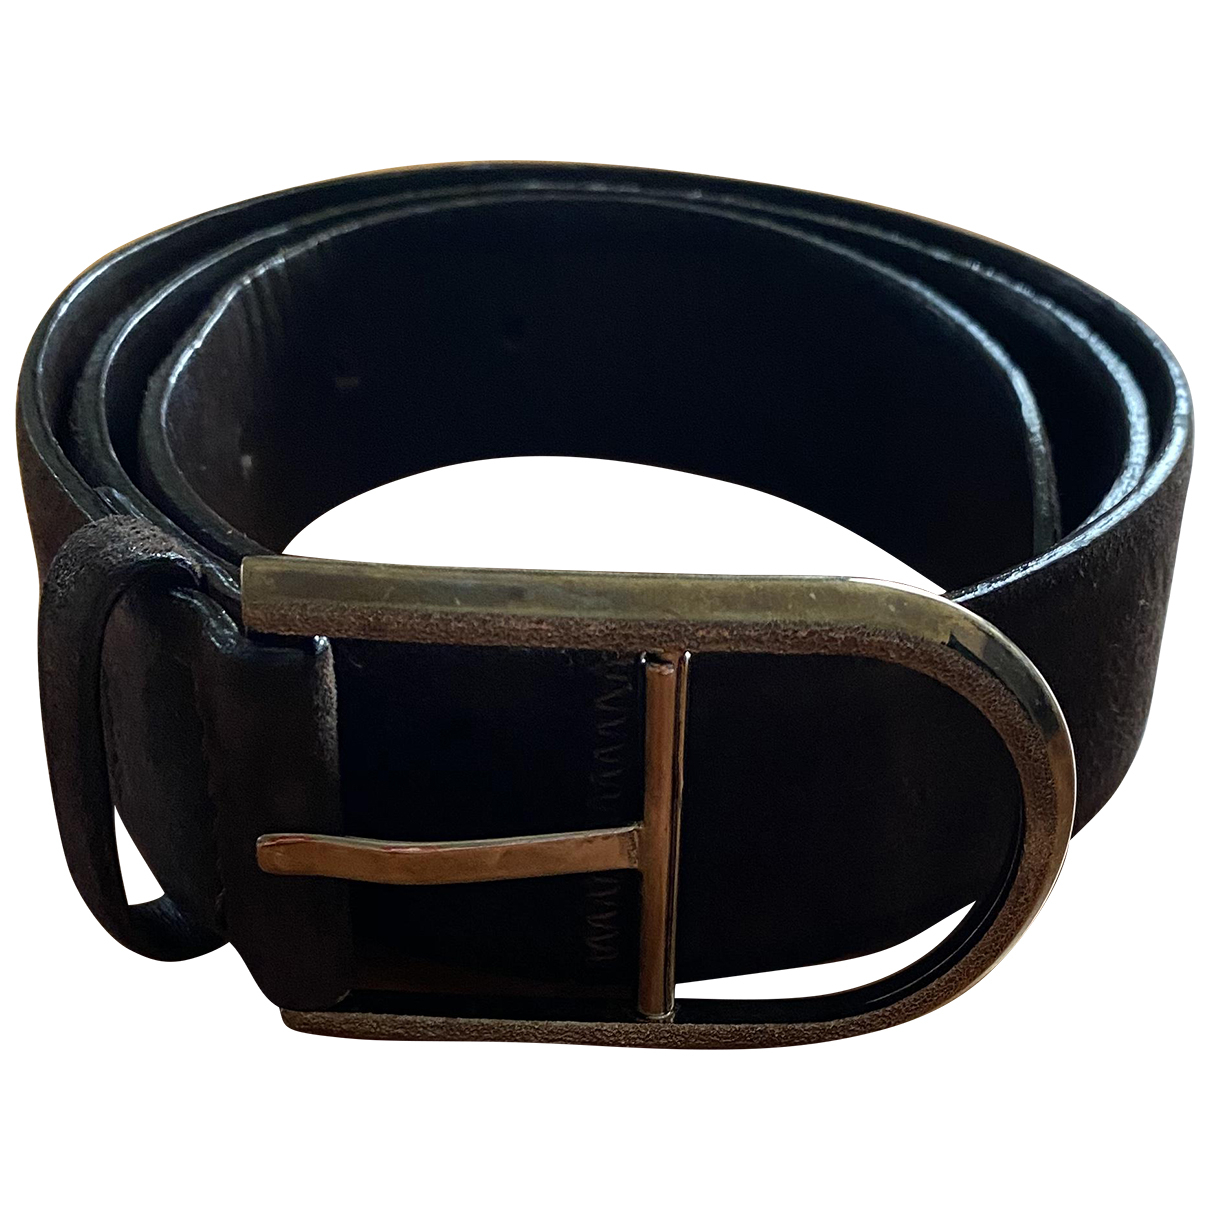 Orciani N Brown Leather belt for Women 85 cm